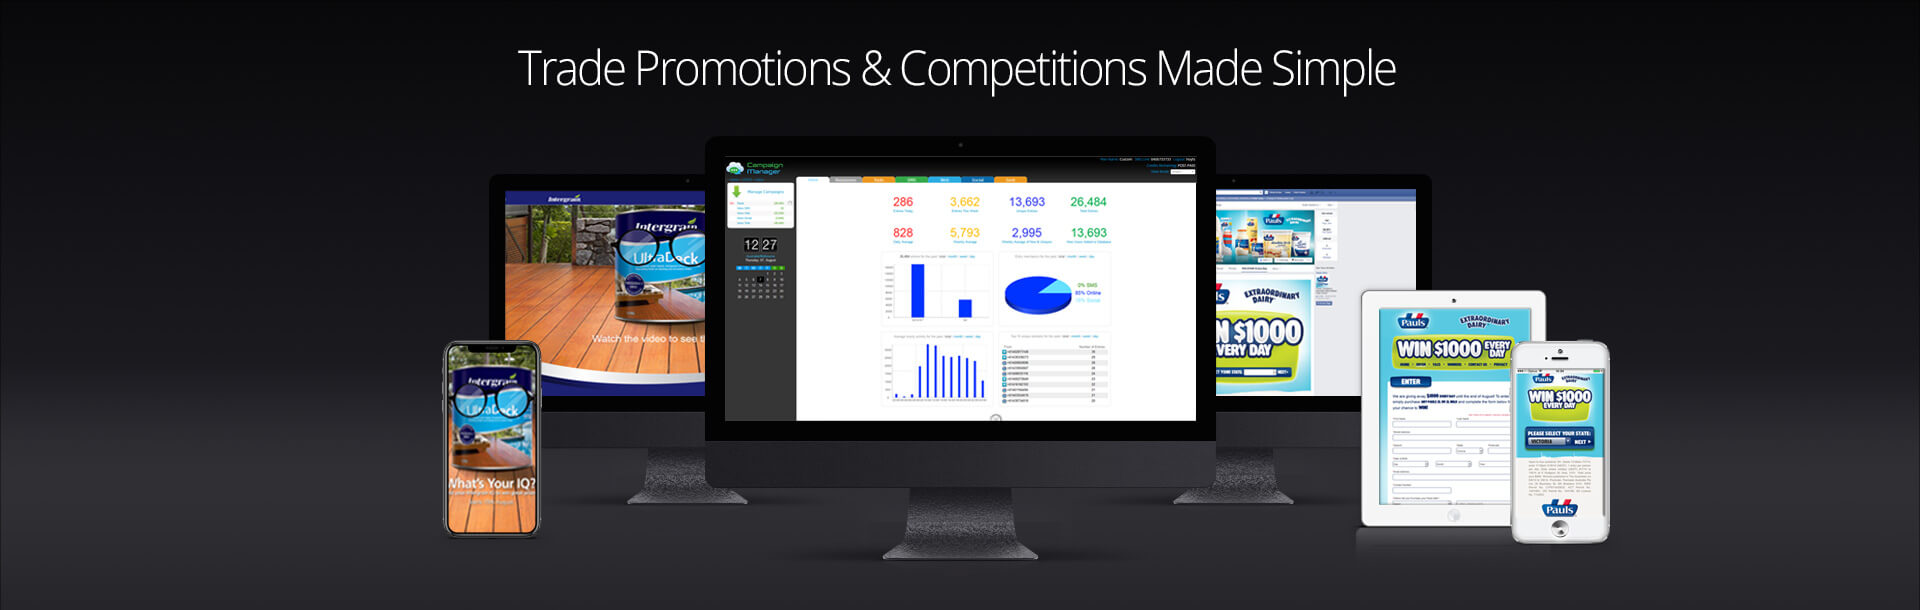 Australian Trade Promotion and Online Competition Setup and Managementt